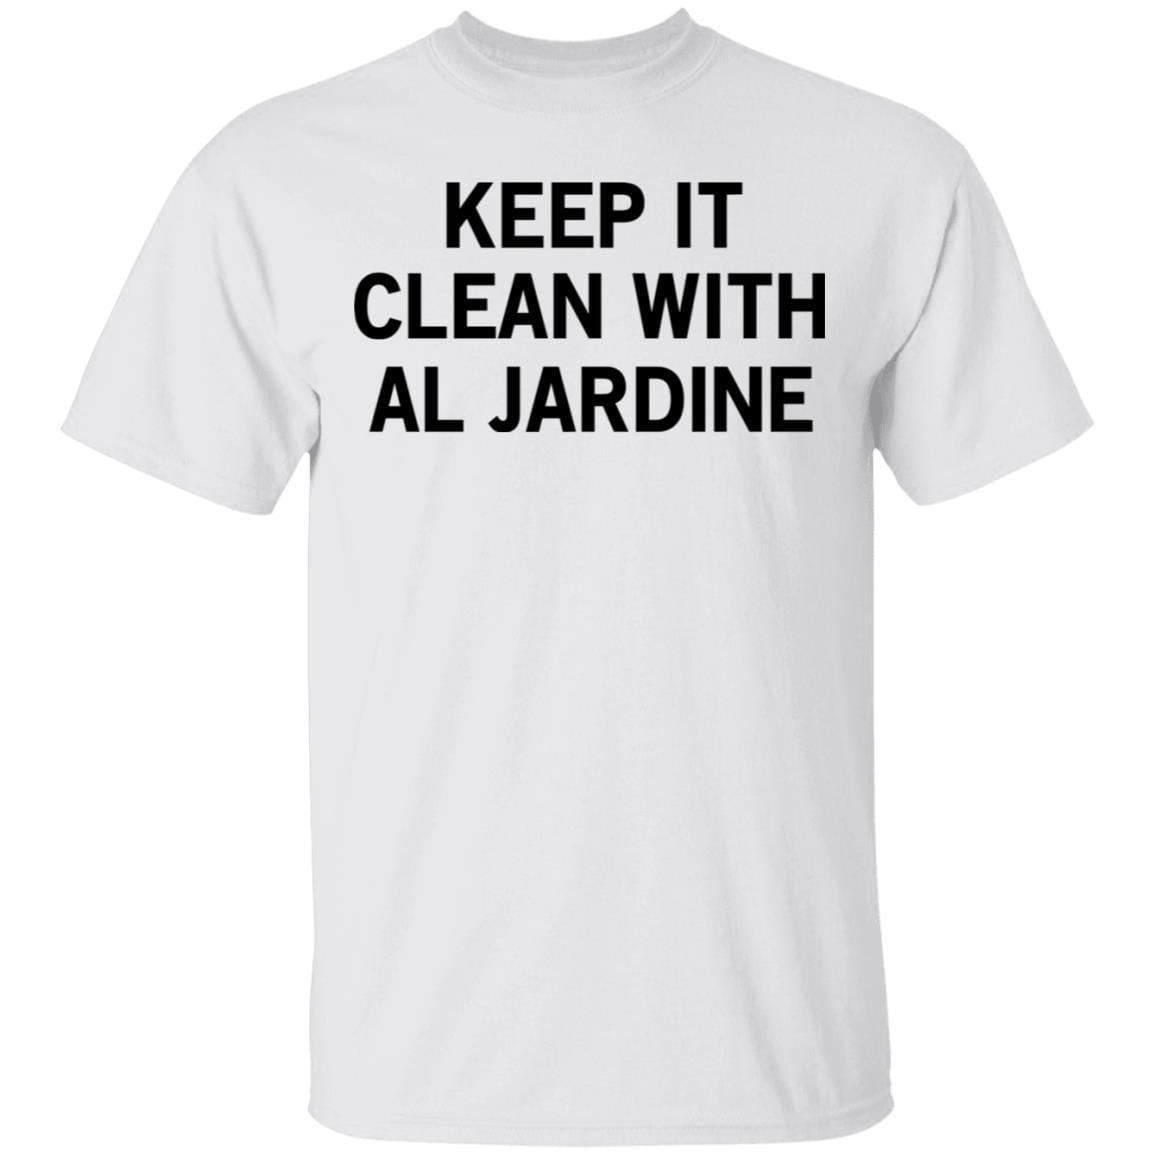 Keep It Clean With Al Jardine T-Shirts, Hoodies 1049-9974-87130083-48300 - Tee Ript